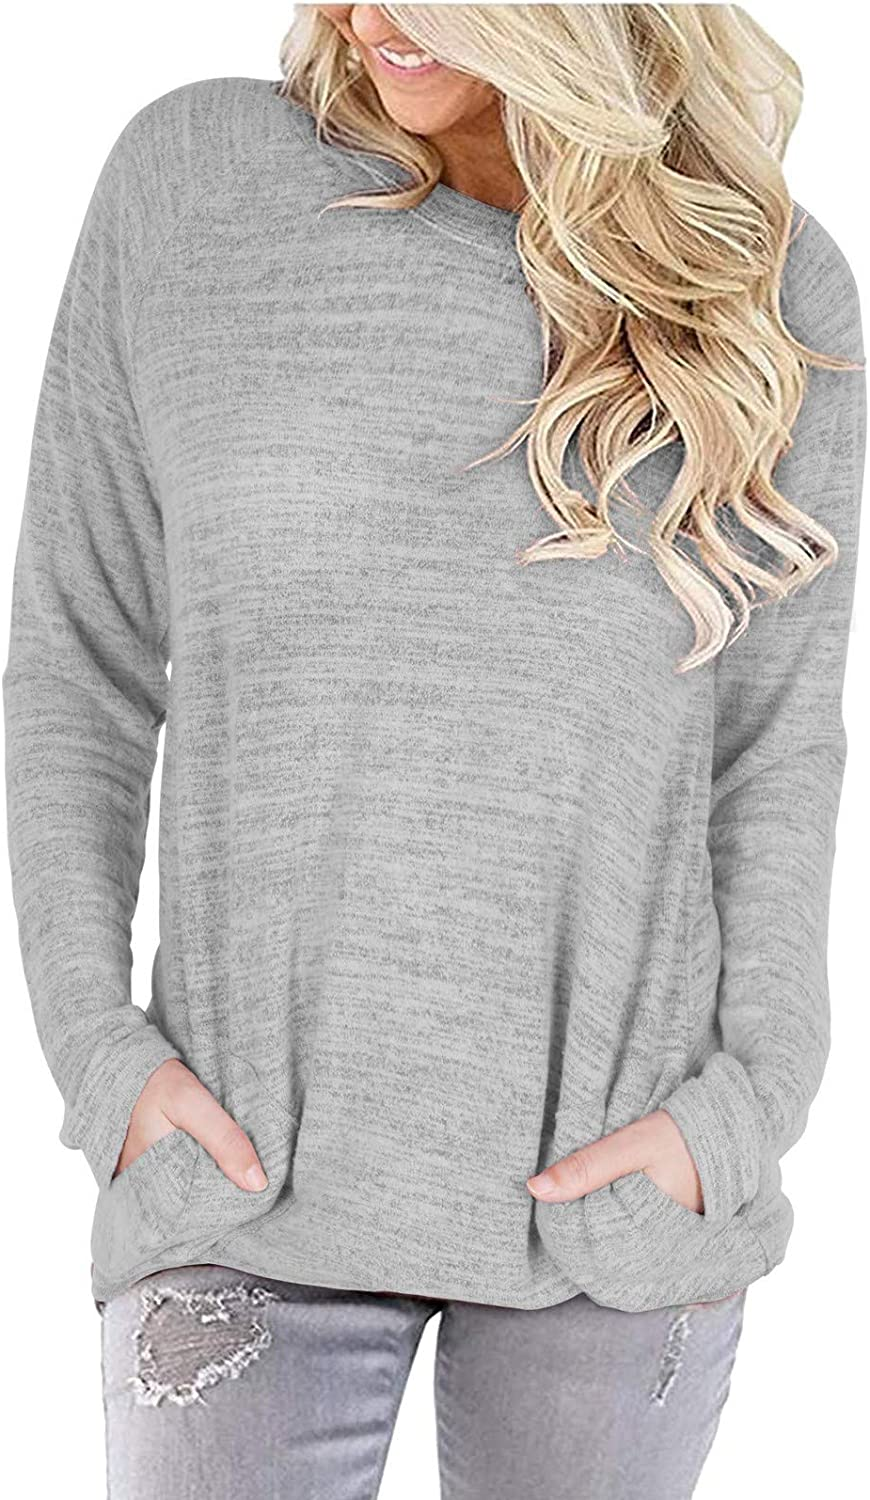 PLENTOP Casual Sweaters for Women Women's Fashion Solid Star Print Casual Patchwork Drawstring Hooded Long Sleeve Tops Shirt Sweatshirt Pullover Sweater